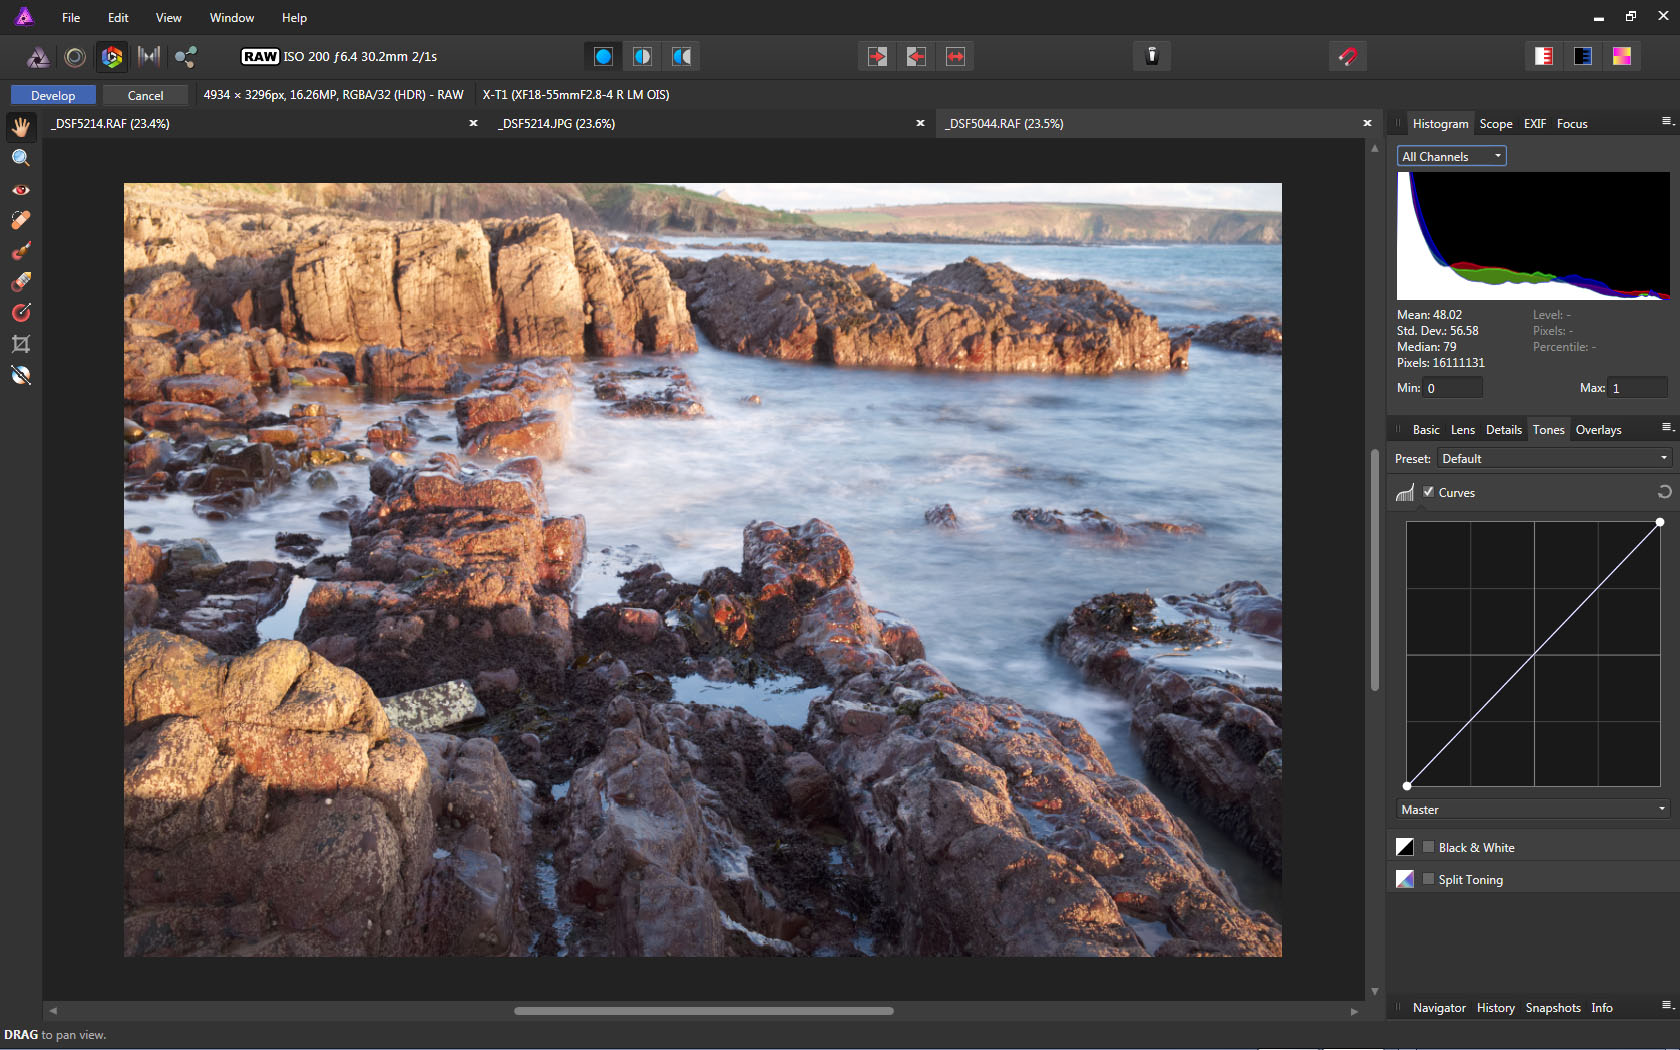 Incorrect histogram with Fuji X-Trans Raw Files - (Pre 1 7) Bugs on